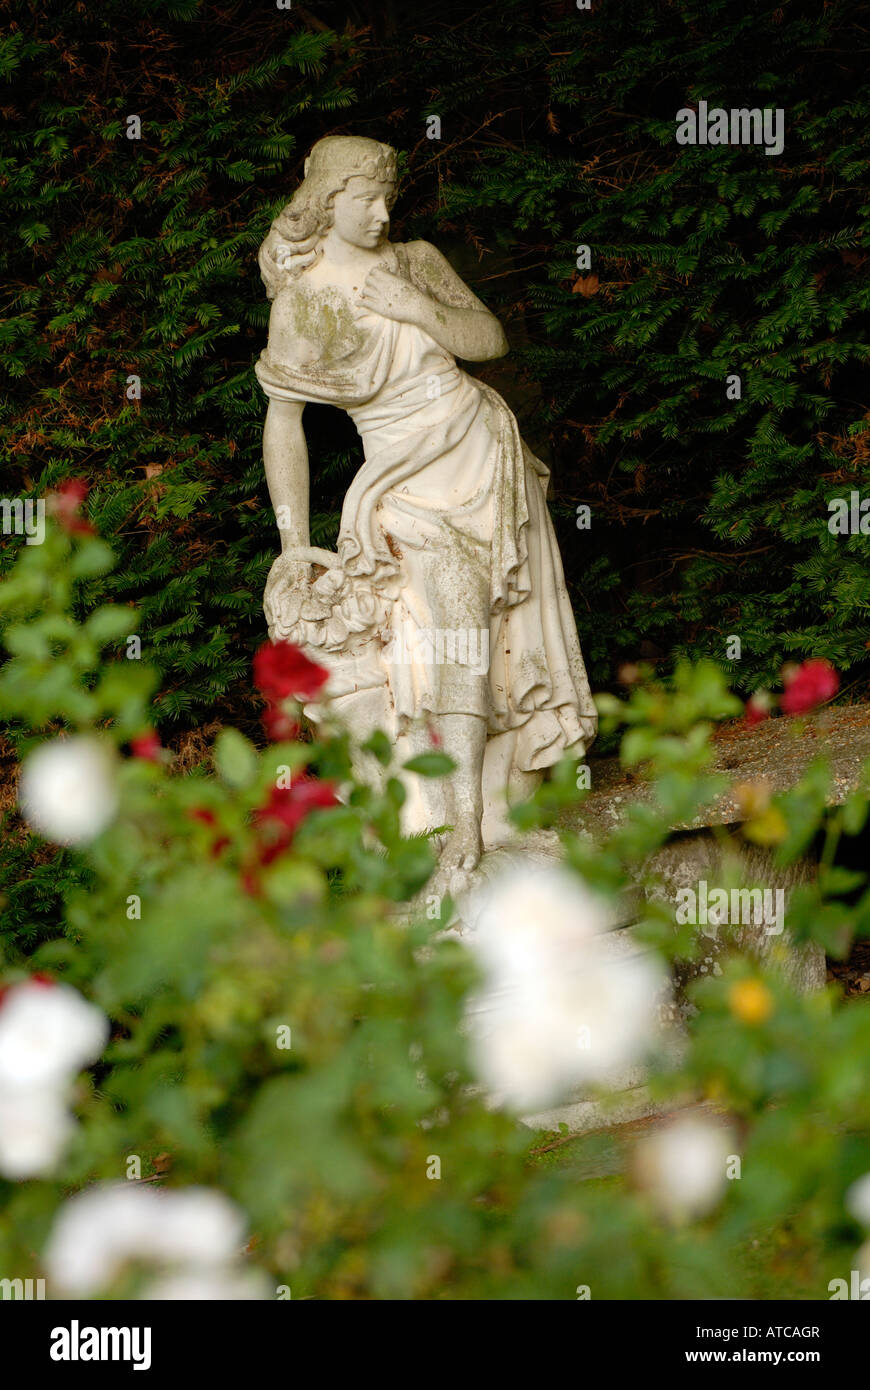 A Neo Classical Greek Roman Garden Statue Set Amongst White And Red Roses  In A Landscaped Manor Garden Grounds